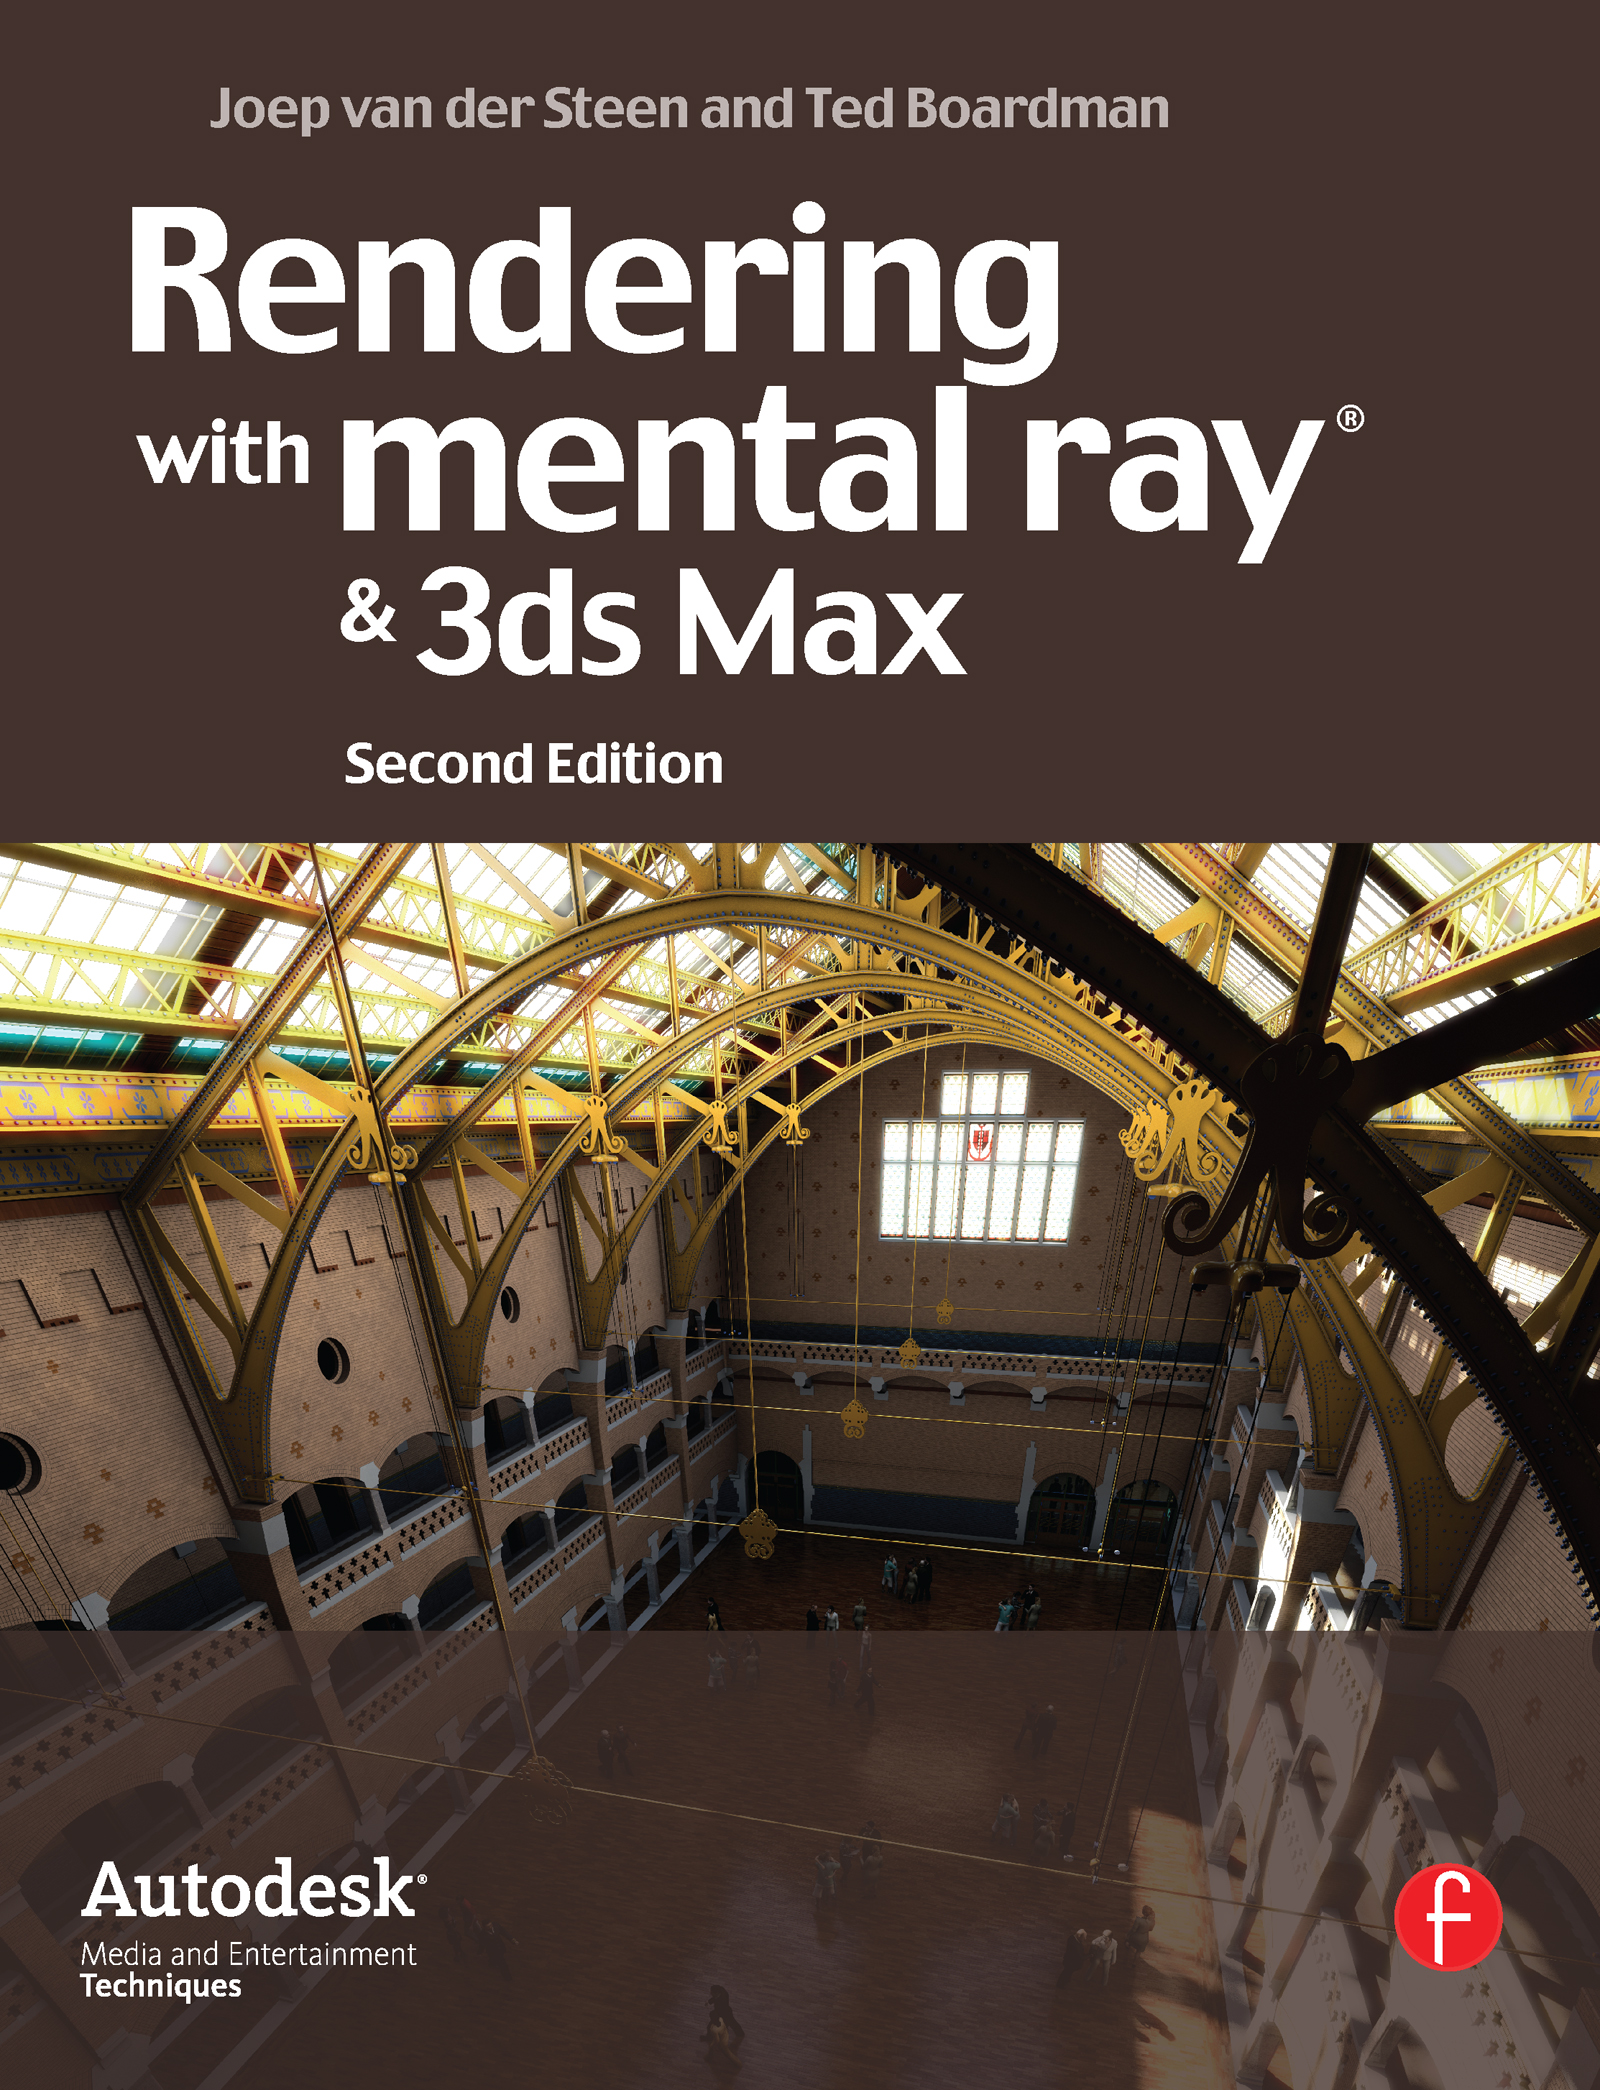 Rendering with mental ray and 3ds Max book cover